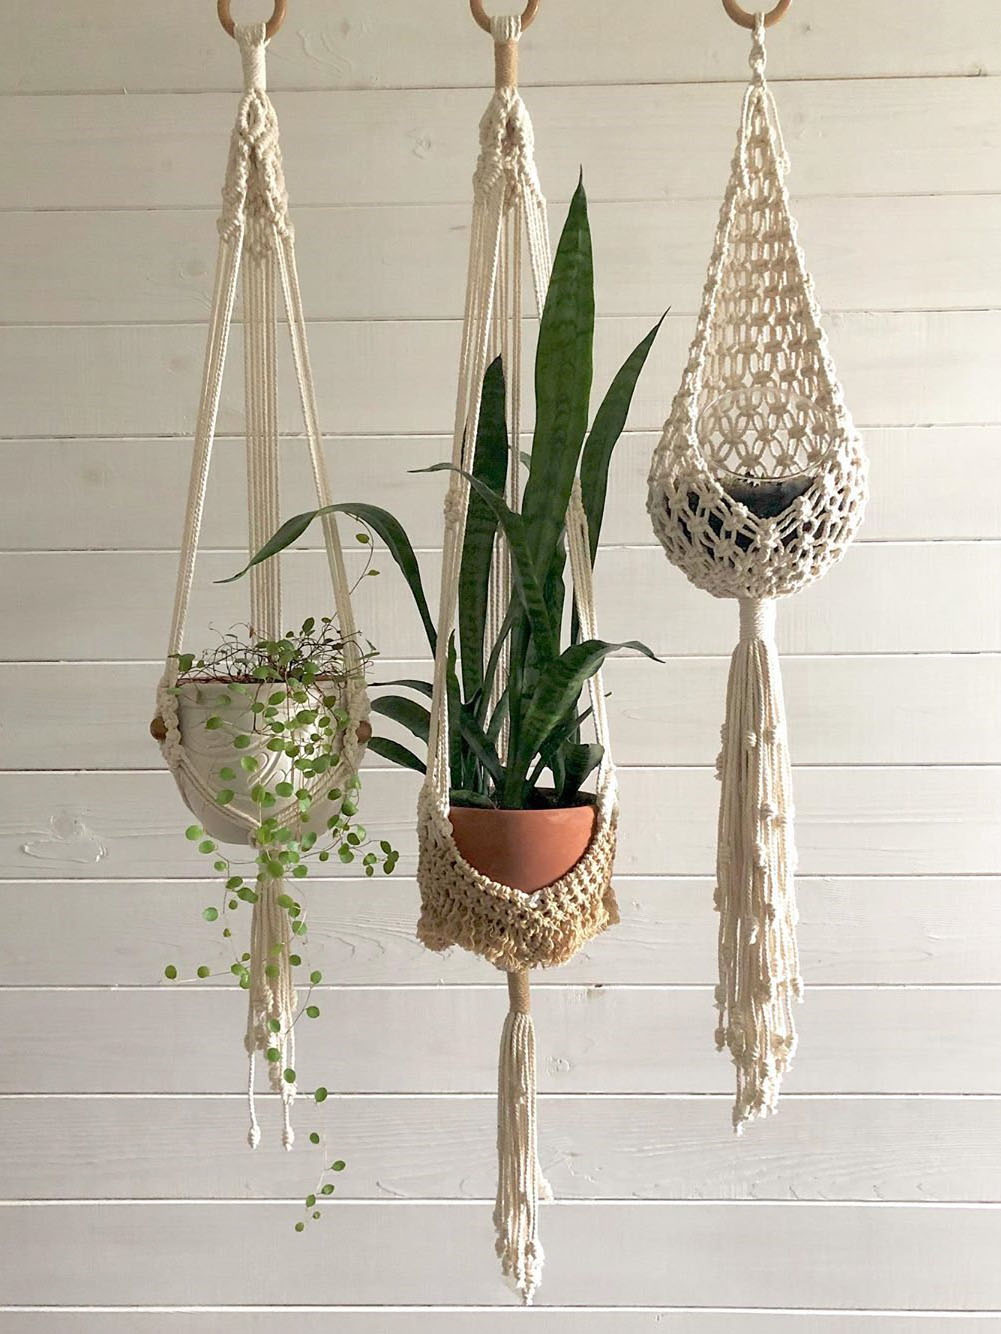 66 easy diy macrame plant hanger design ideas to inspire your next home decor project and make house smell great natural. Try and enjoy!   Soflyme.com